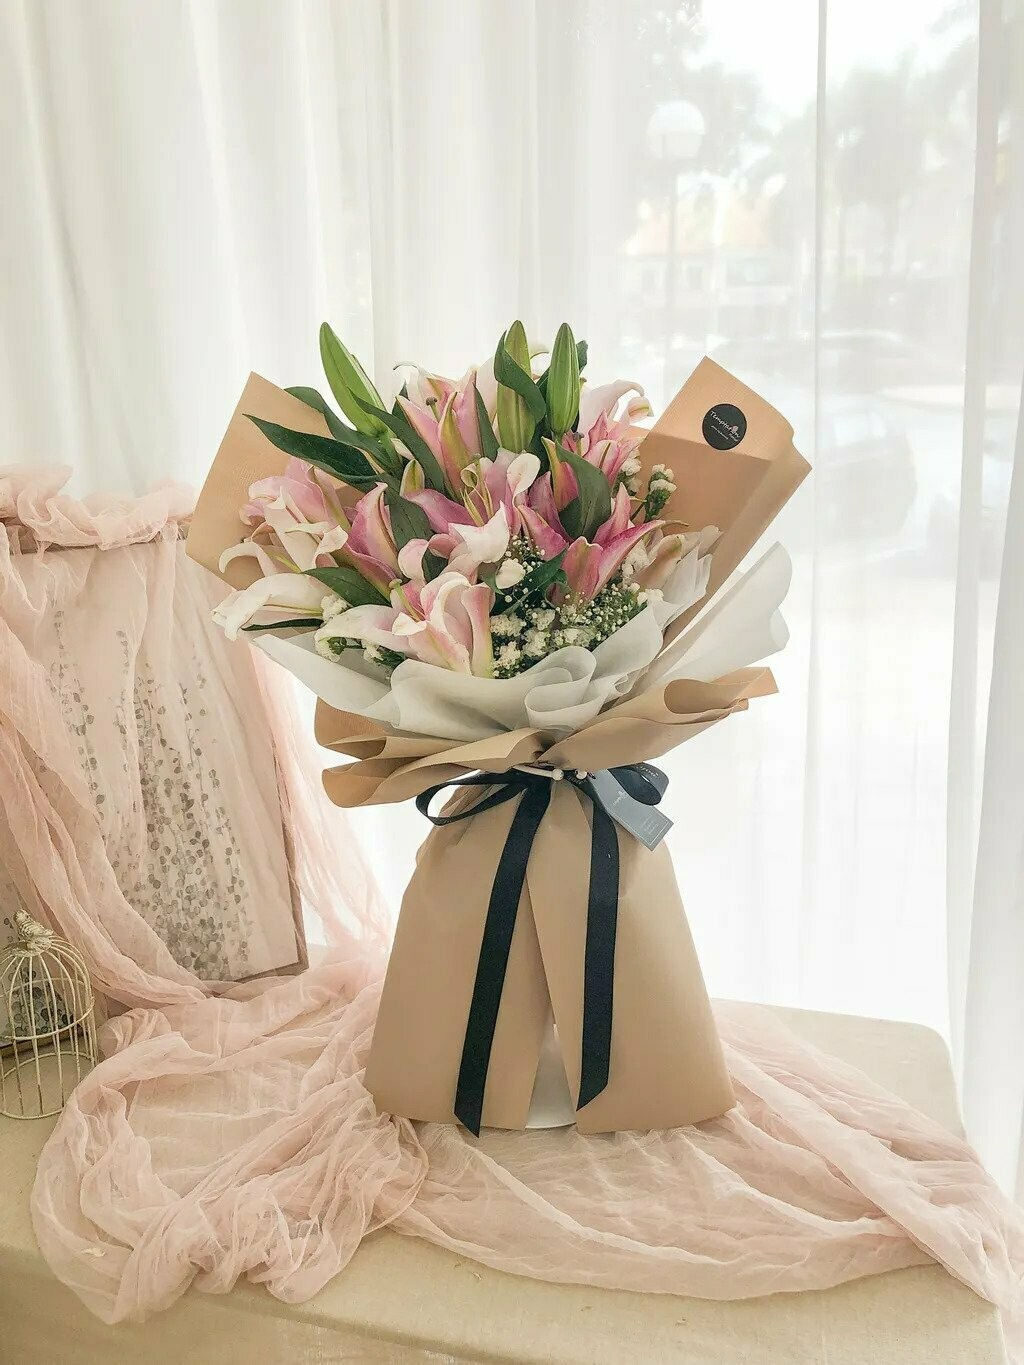 Lilium (By:Temptation Florist from Seremban)